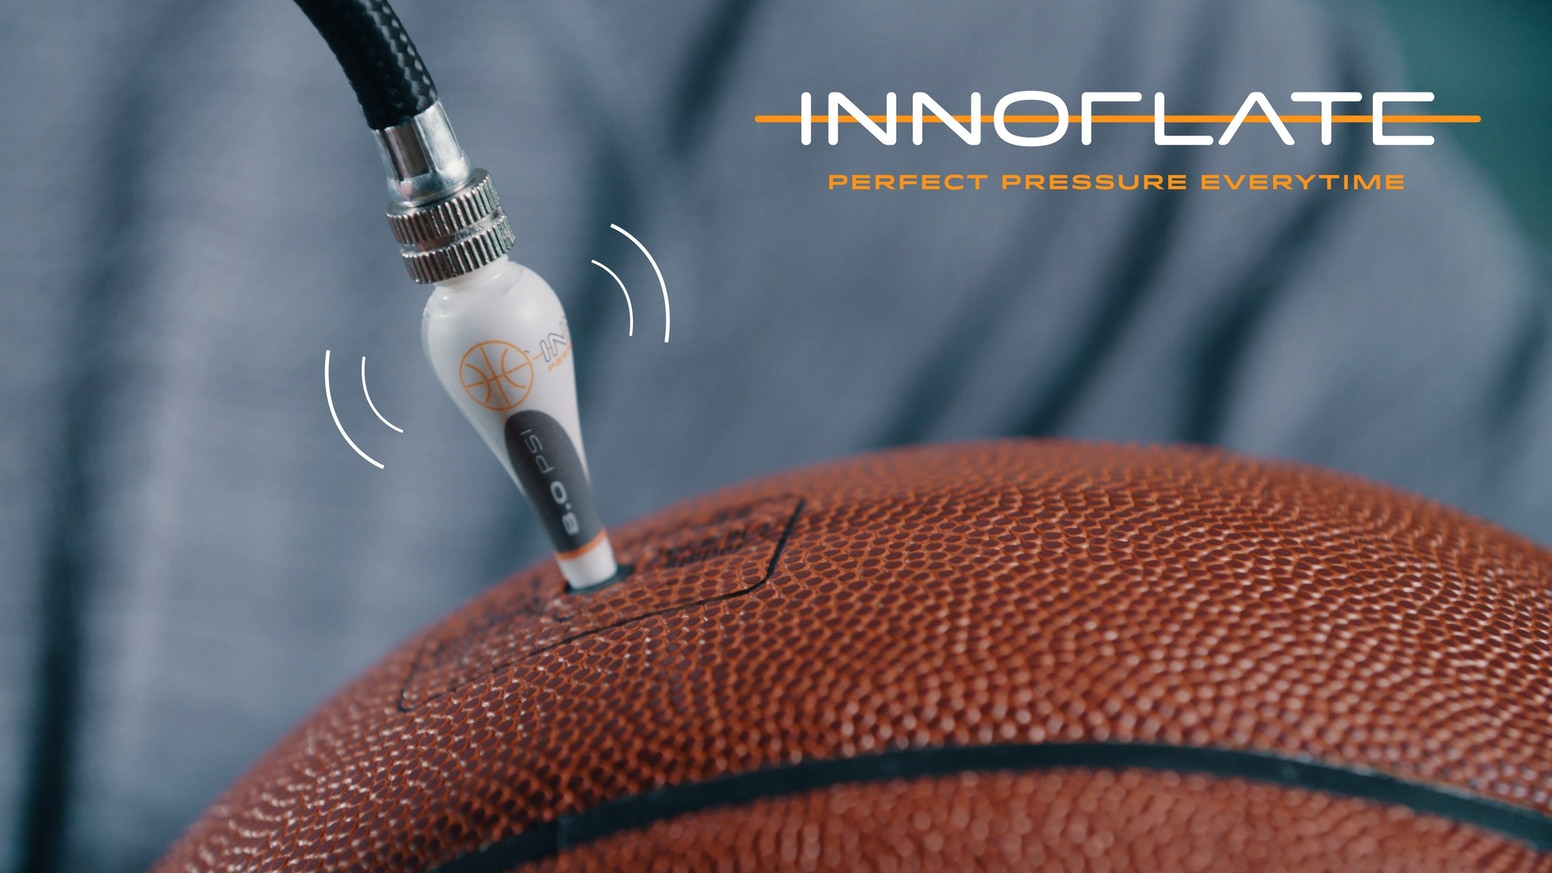 World's first self-regulating Basketball inflation needle by